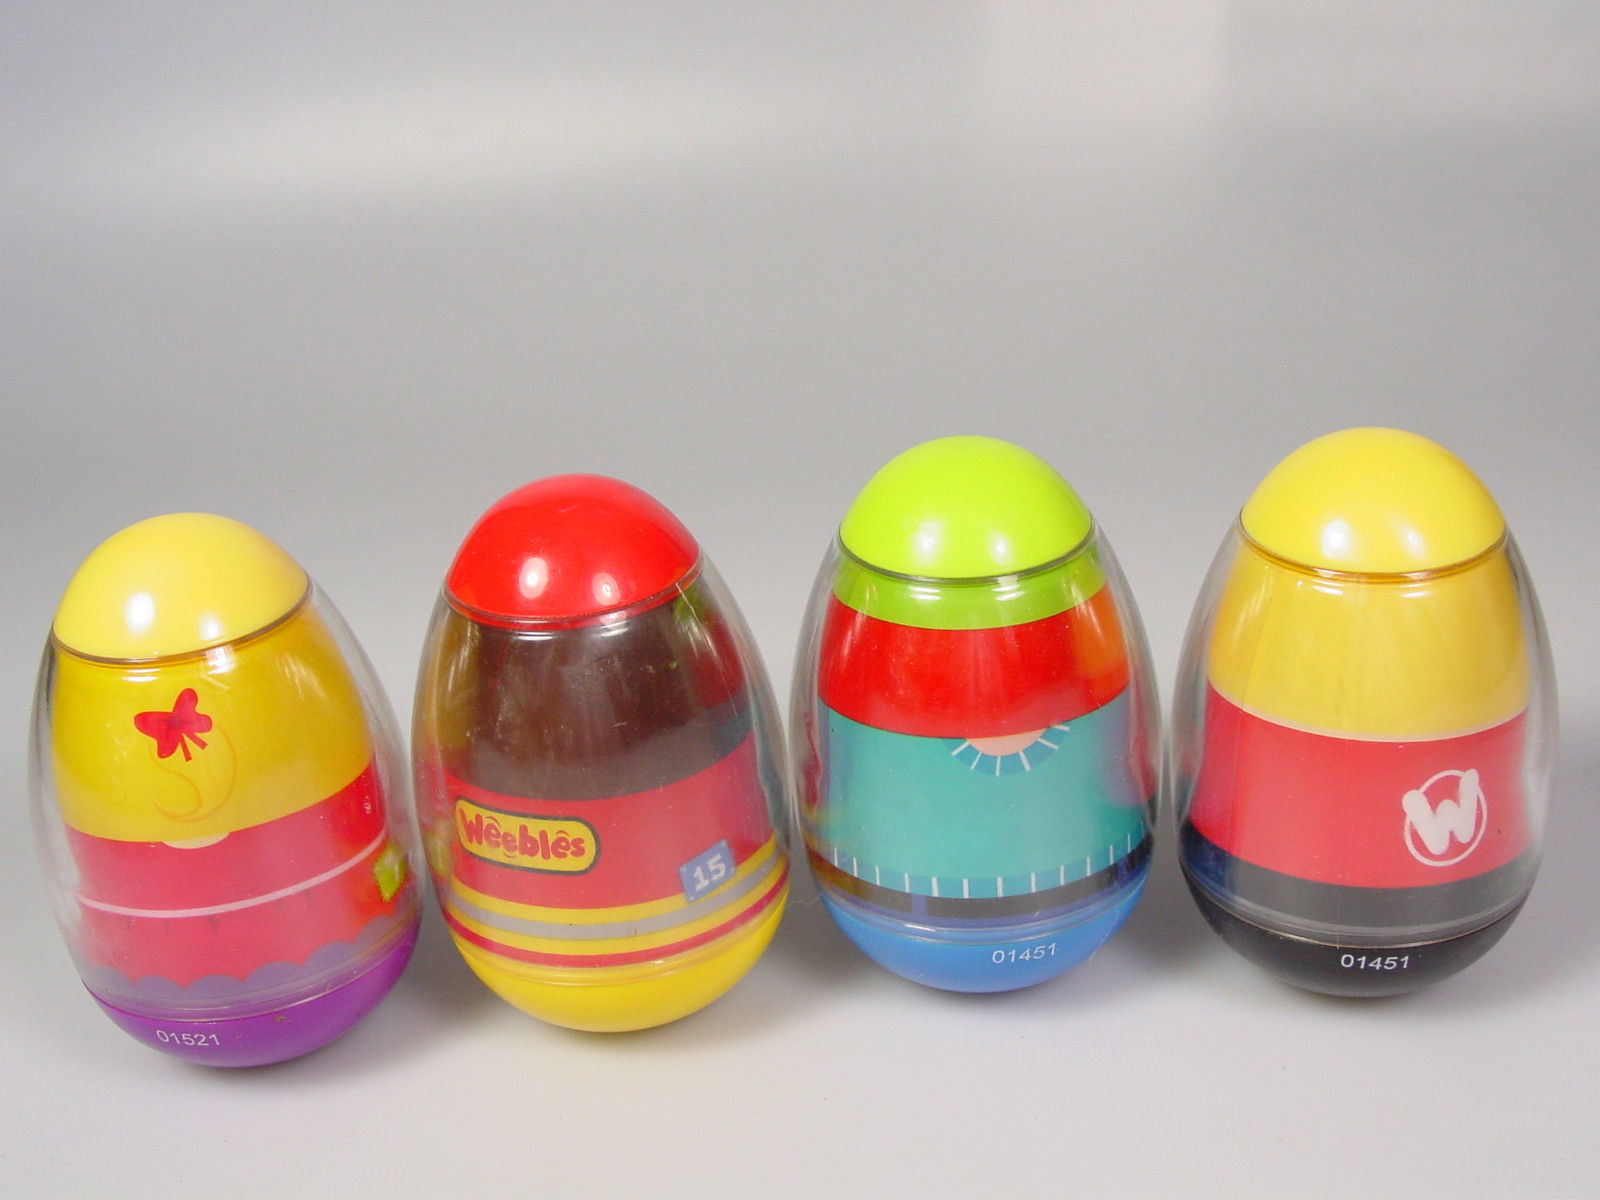 Weebles toy soccer player boy plastic egg pretend play toddler gift